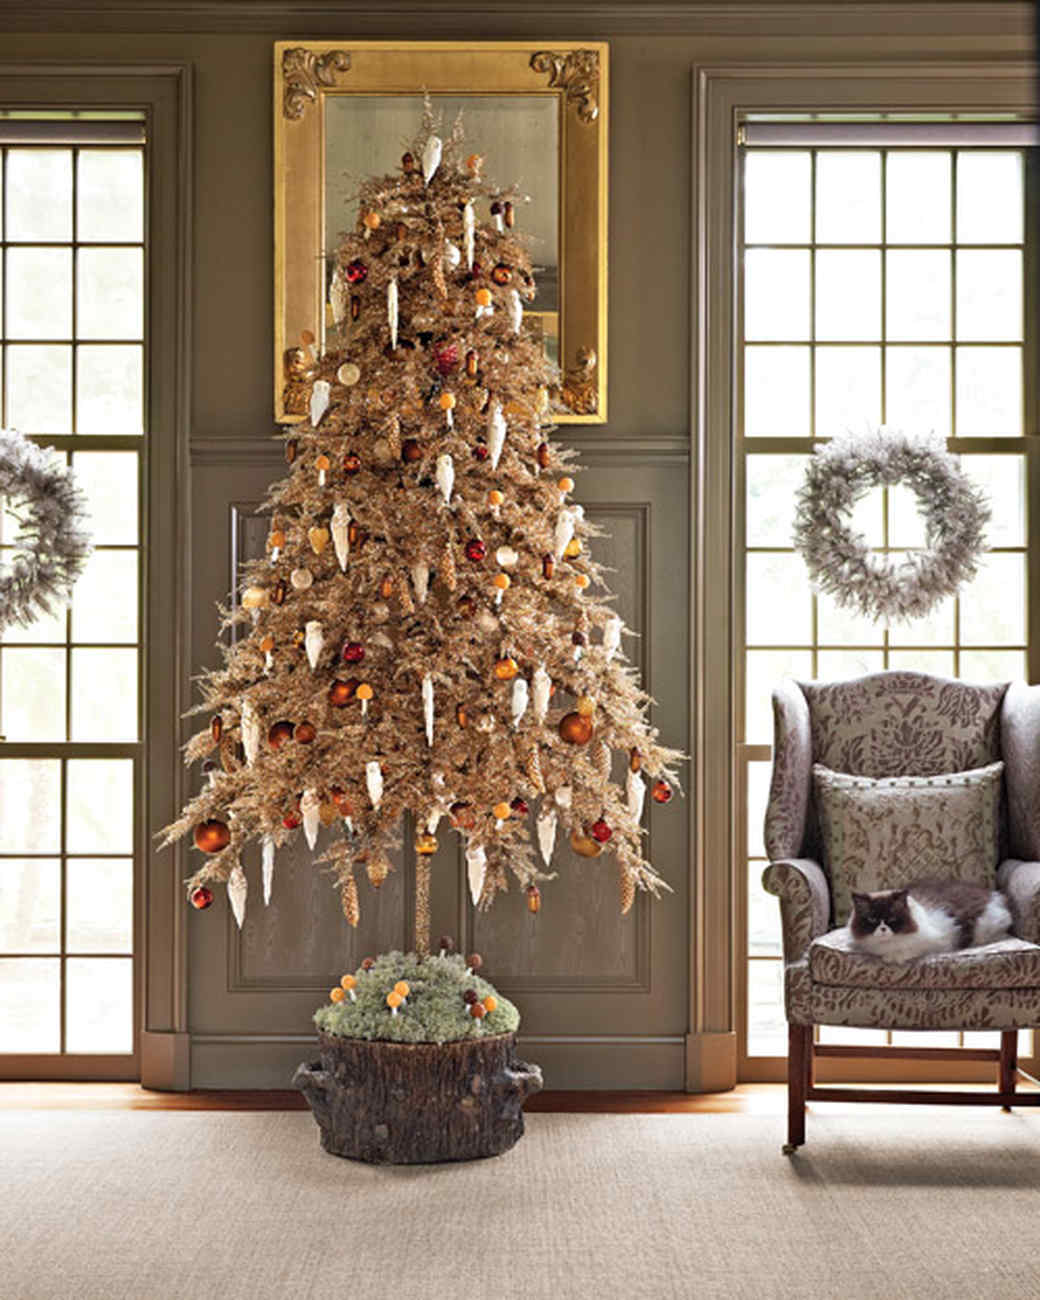 holiday decorating ideas martha s decorating ideas martha stewart 12490